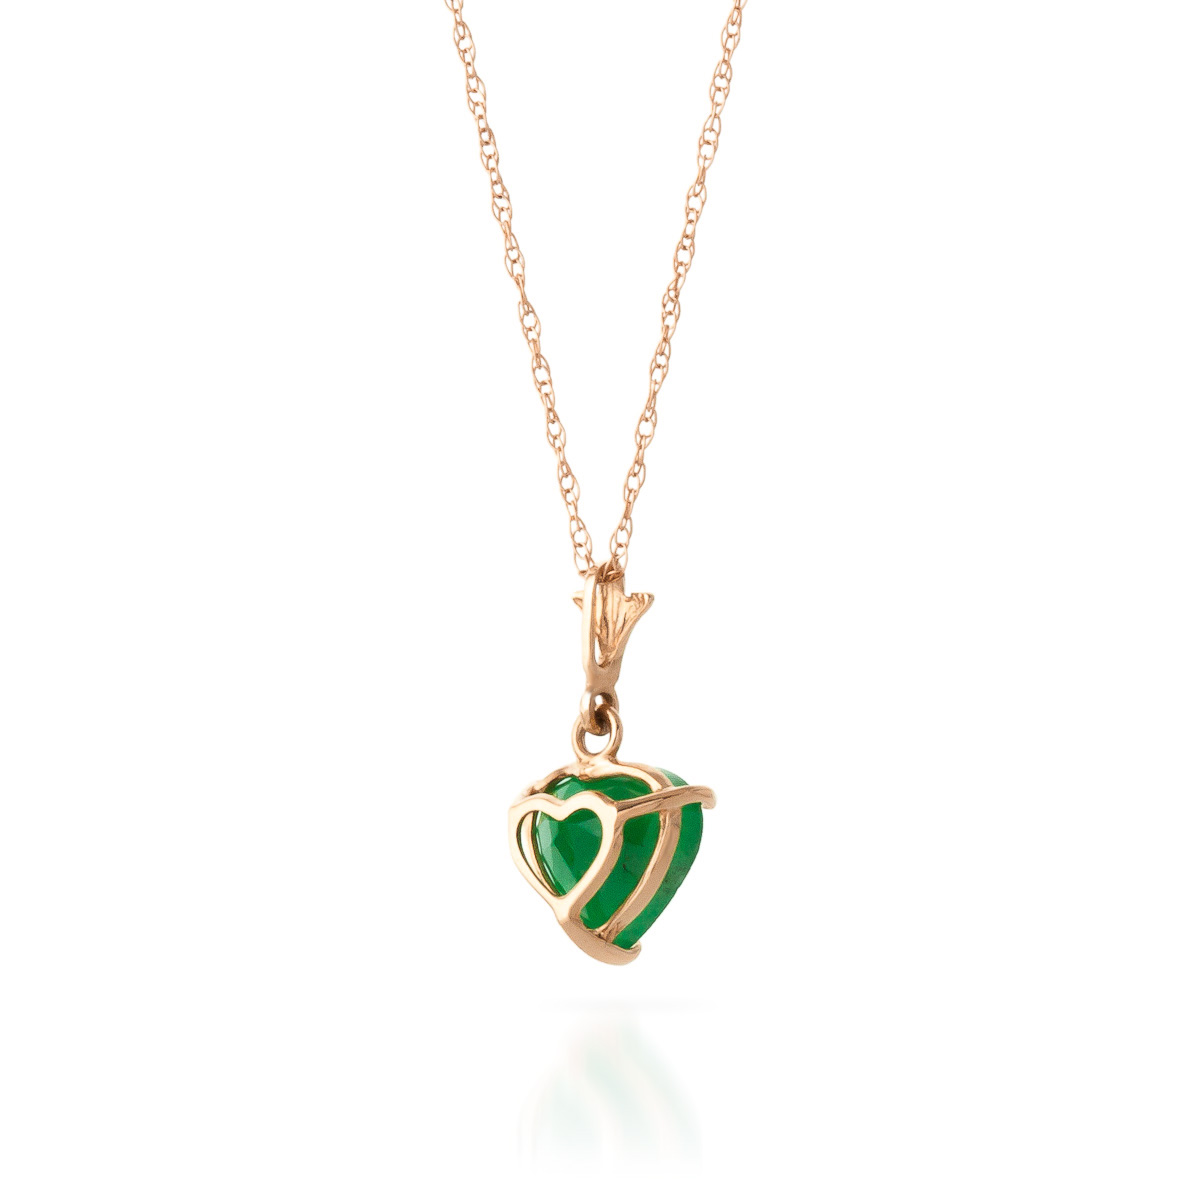 Emerald Heart Pendant Necklace 1.2ct in 9ct Rose Gold